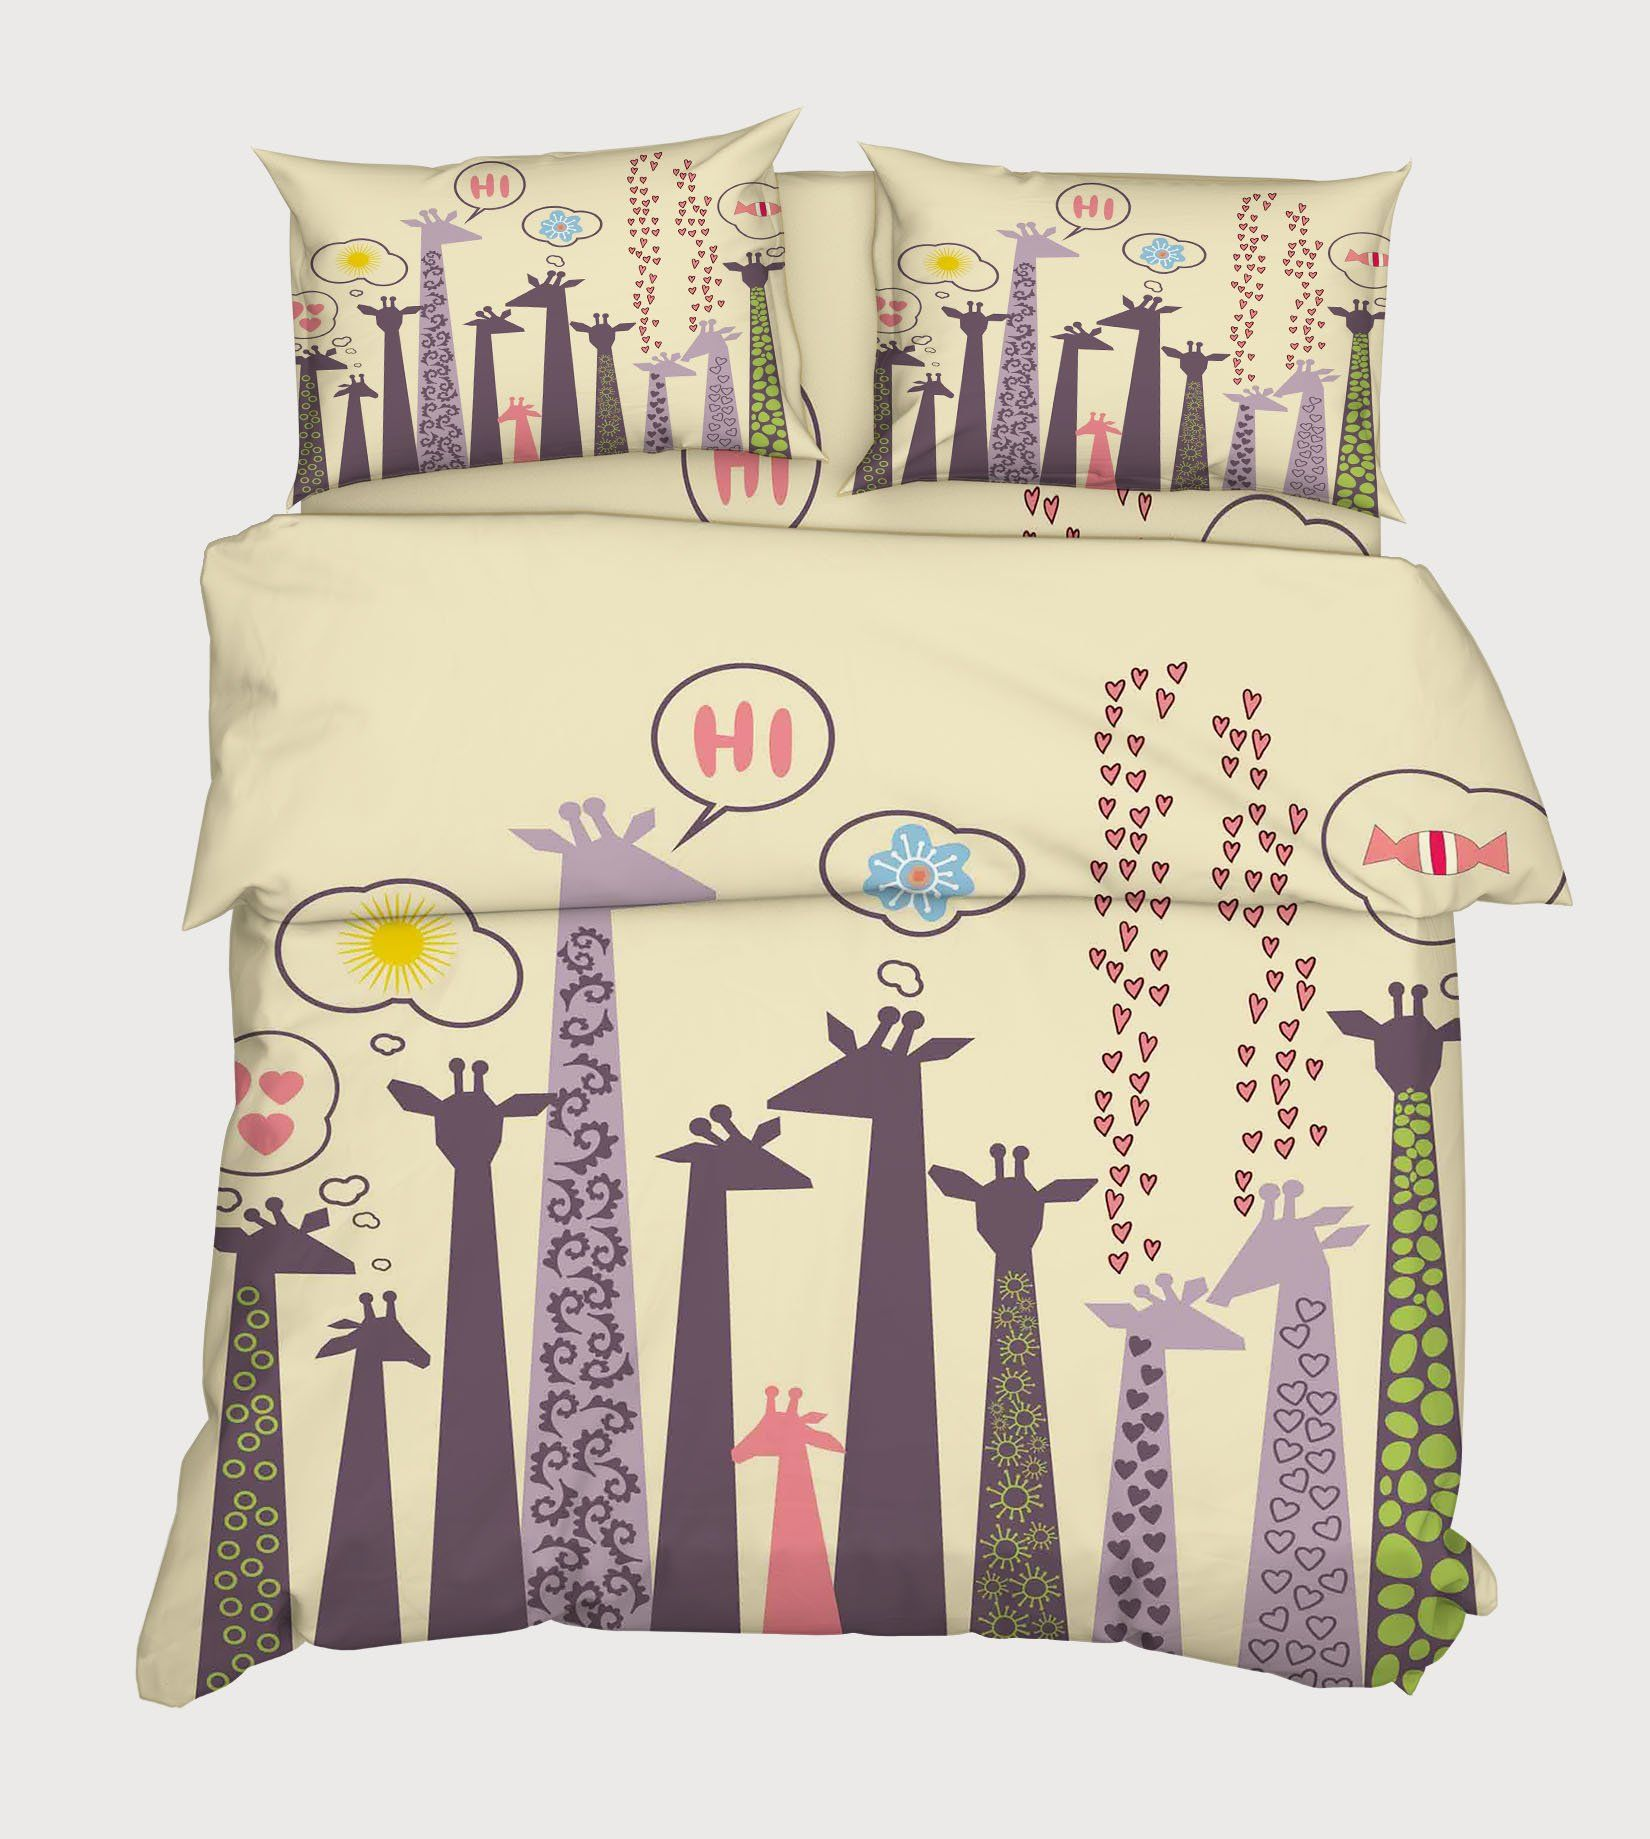 3D Cartoon Giraffes 94 Bed Pillowcases Quilt